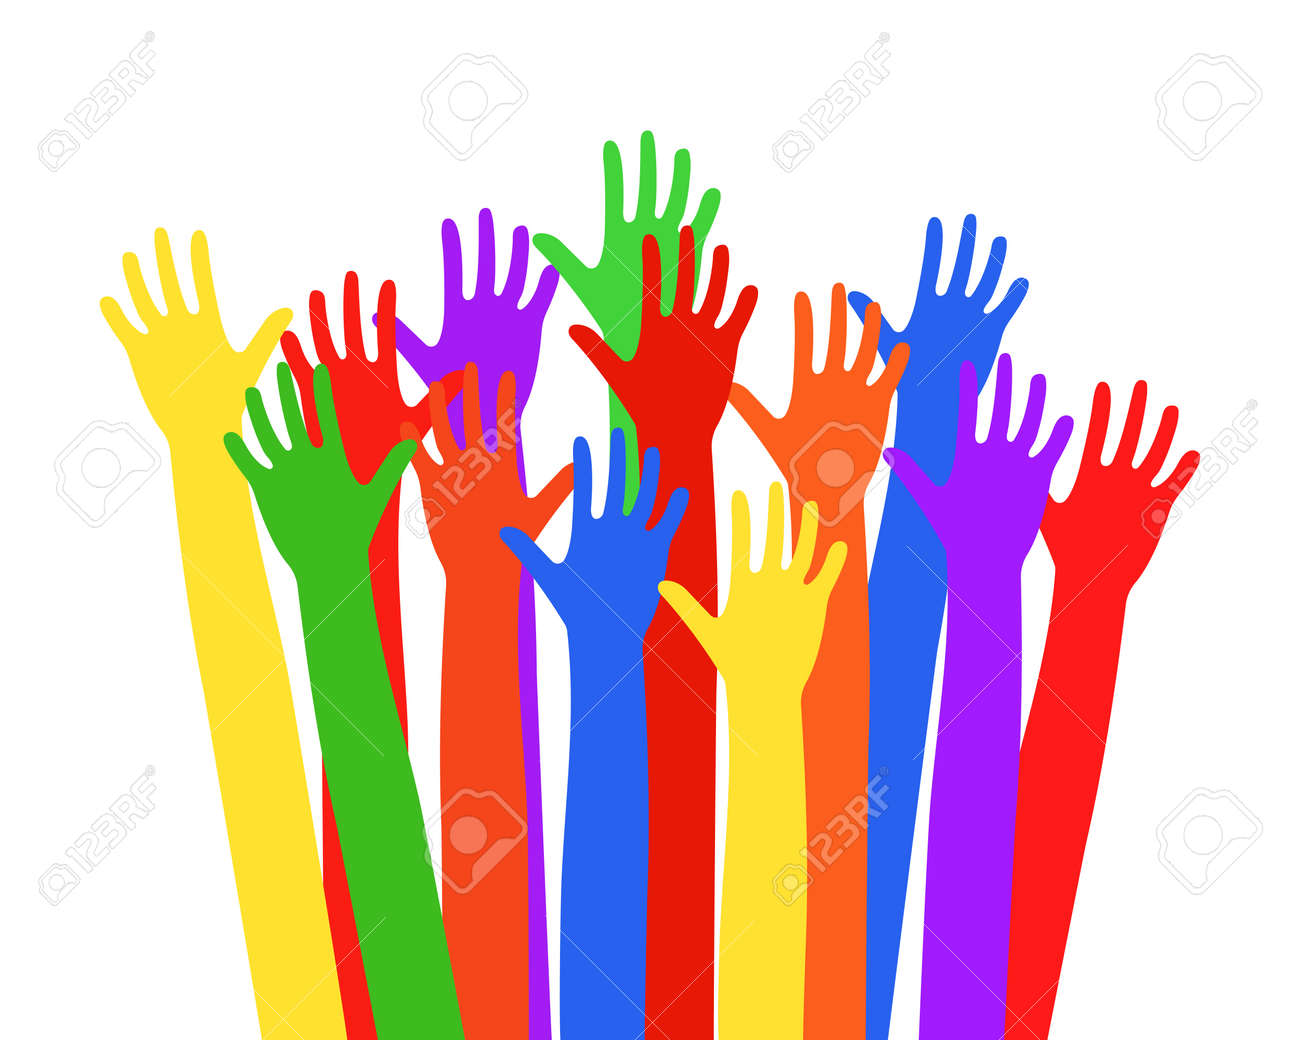 Multi-colored hands raised up Vector illustration EPS10 - 158587863